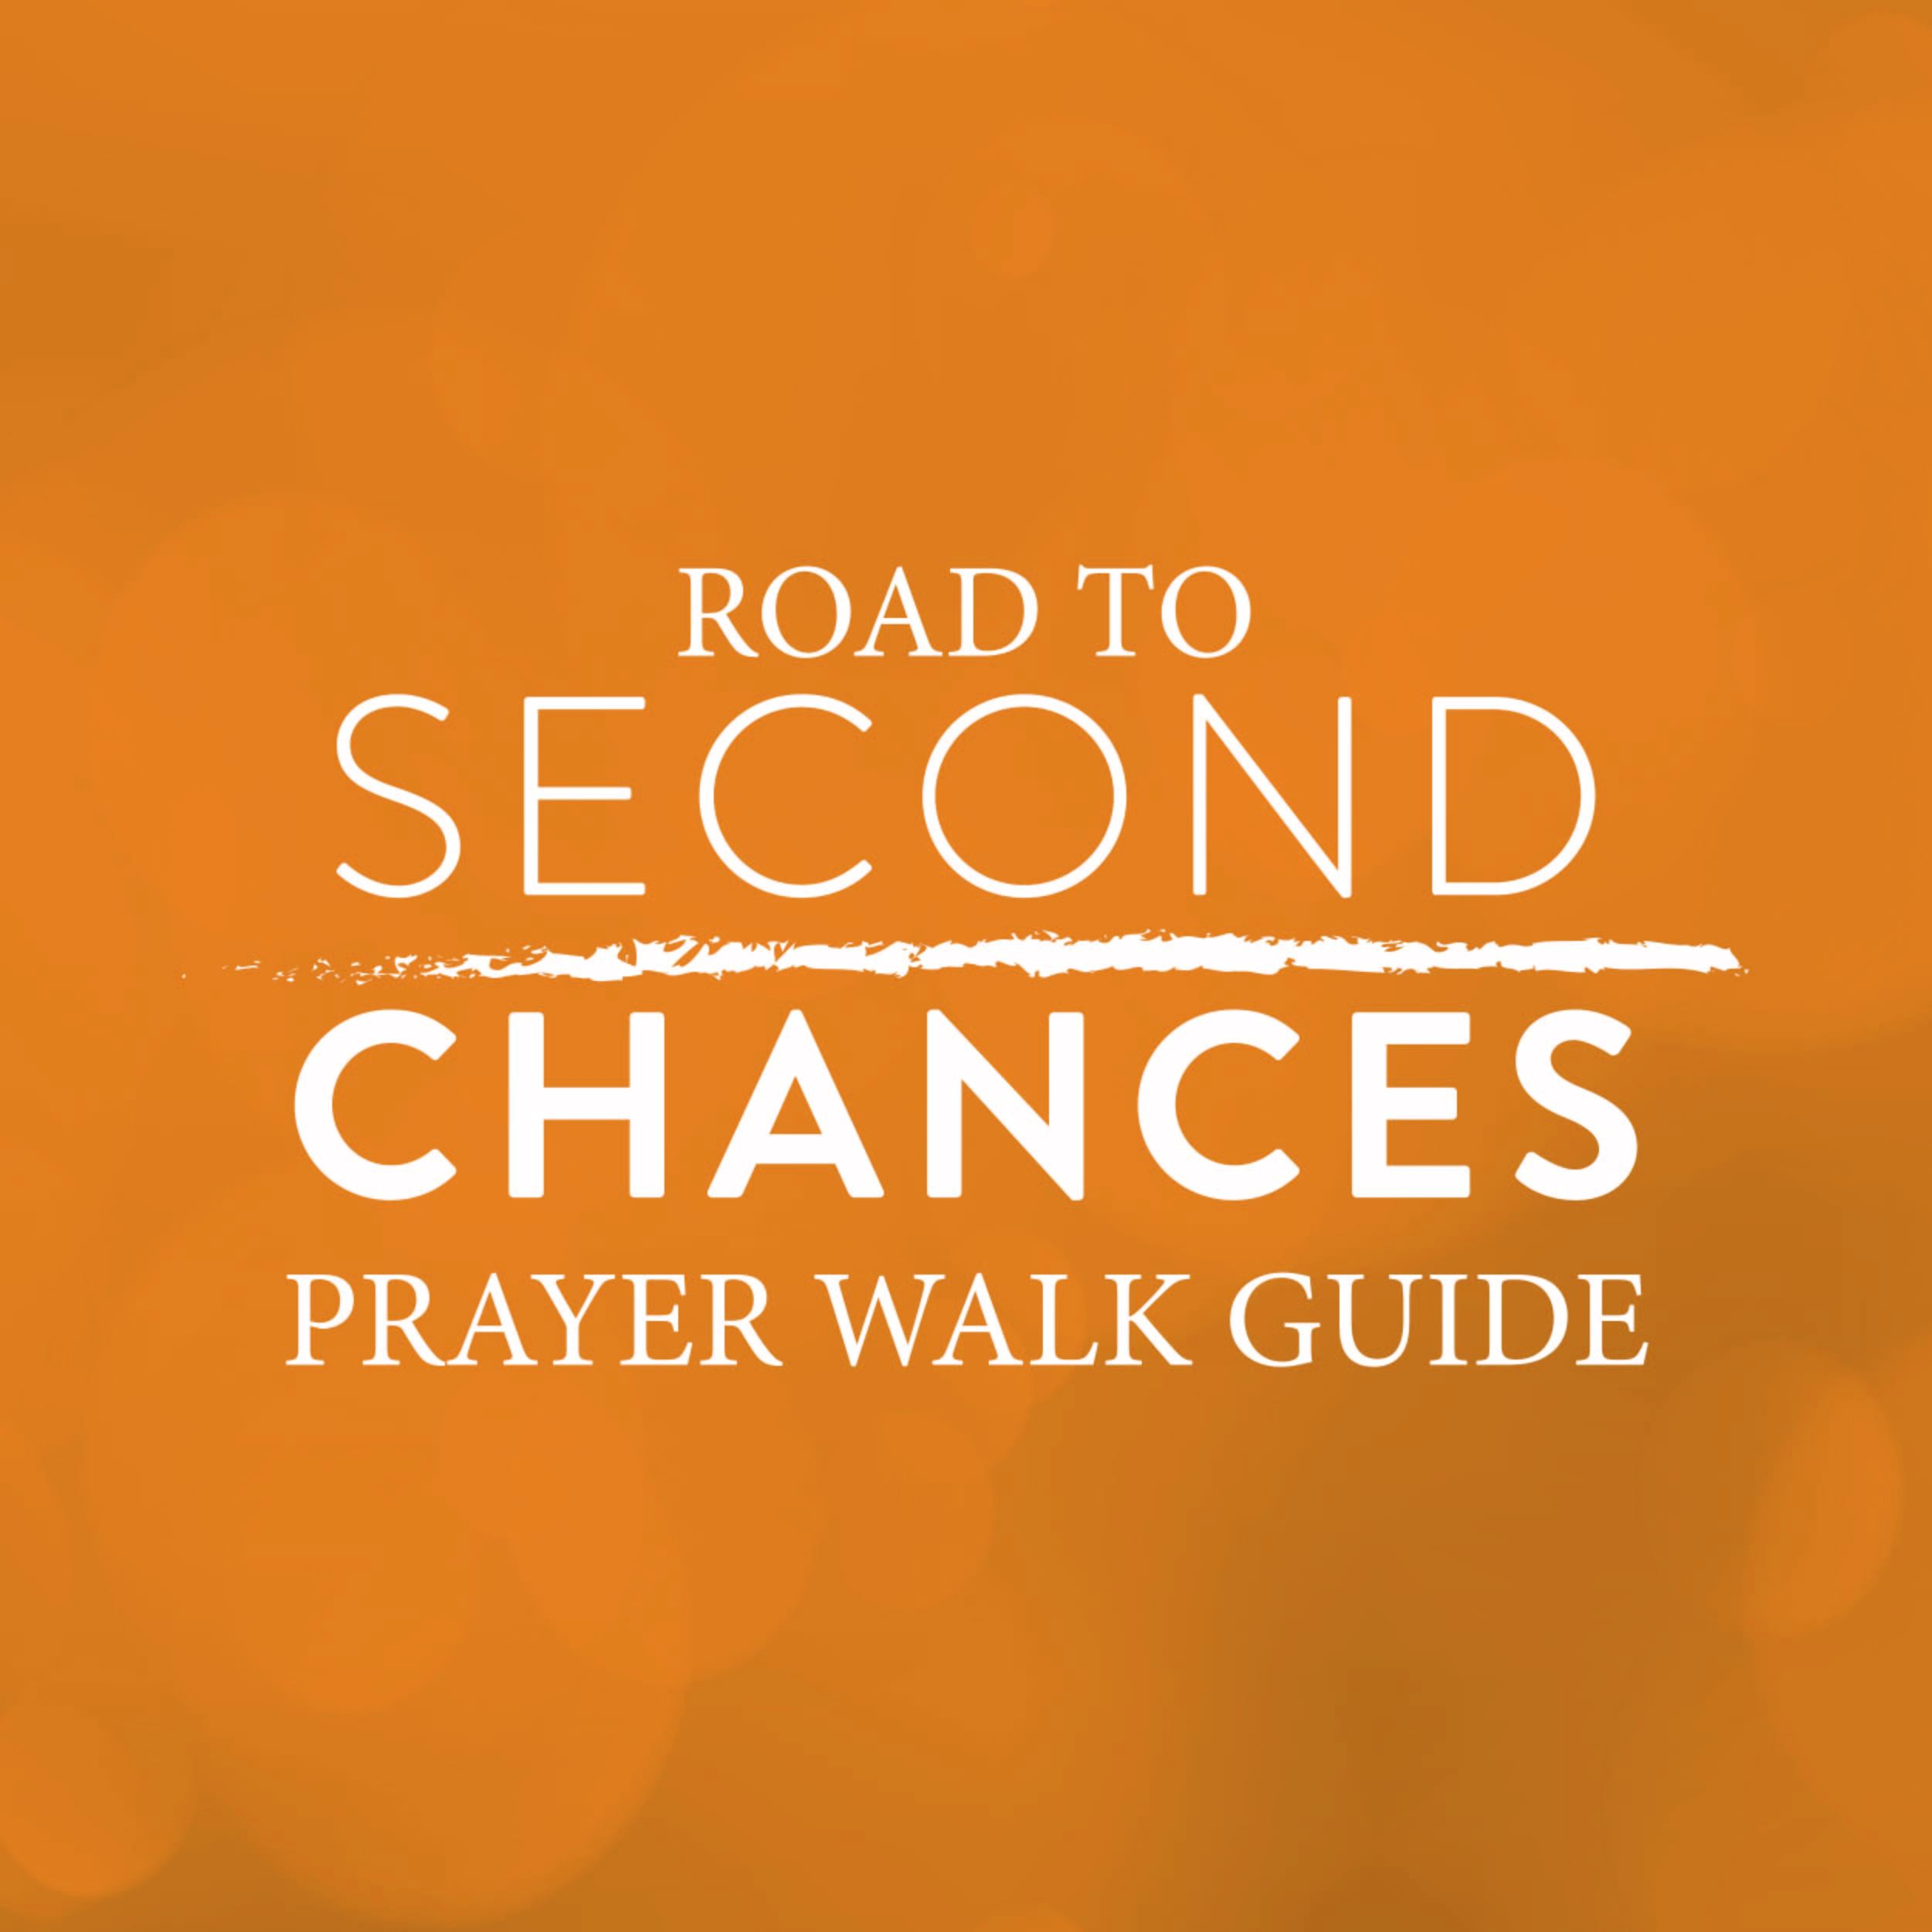 Road to Second Chances Prayer Walk Guide